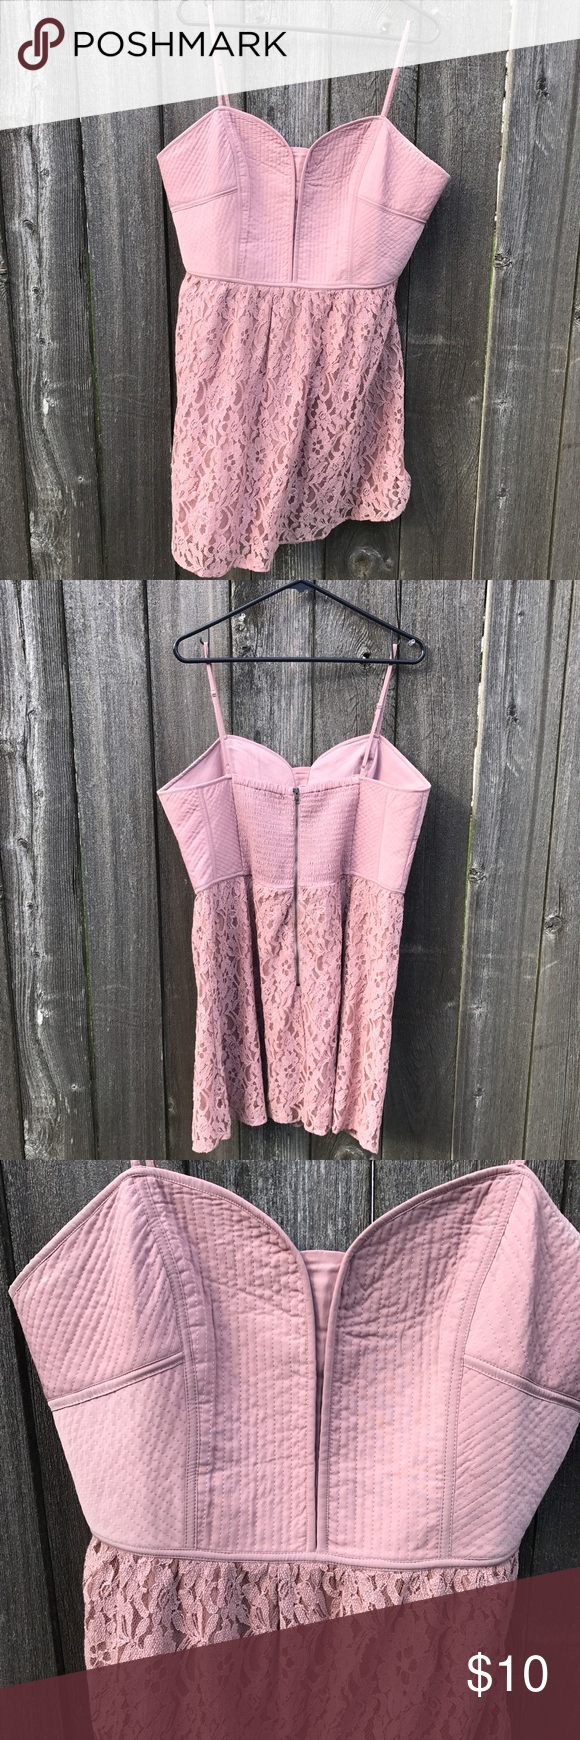 American Eagle Pink Lace Dress Light pink American Eagle lace dress. Structured bodice with lace skirt that hits above the knee. Exposed zipper and elastic in the back for some stretch. Skirt is not A-line. American Eagle Outfitters Dresses